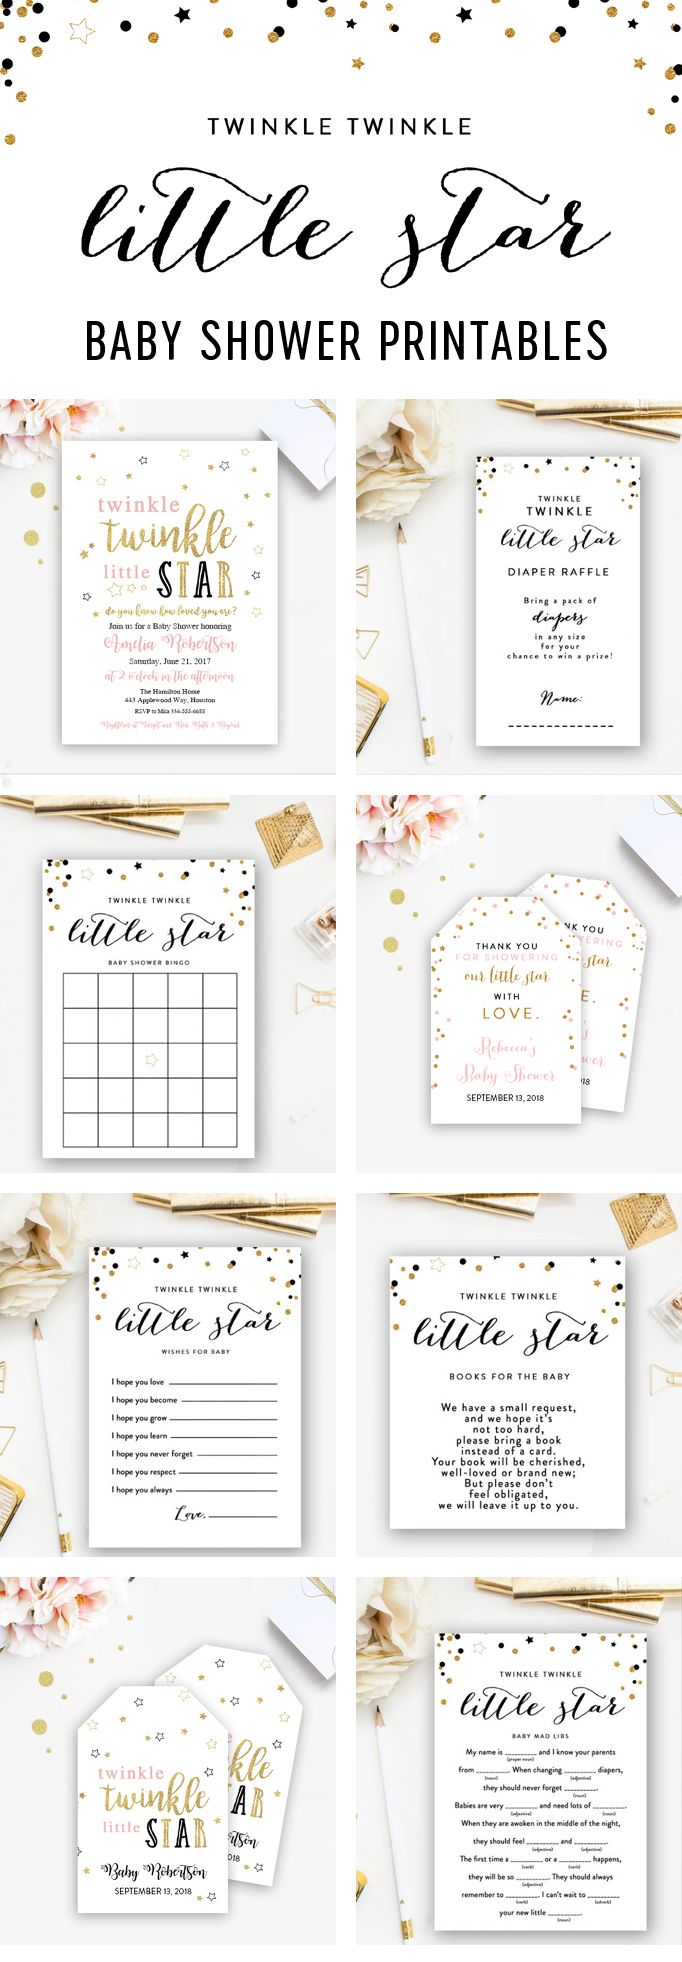 These Printables are Perfect to Go with Your Twinkle Twinkle Little Star Baby Shower Theme!